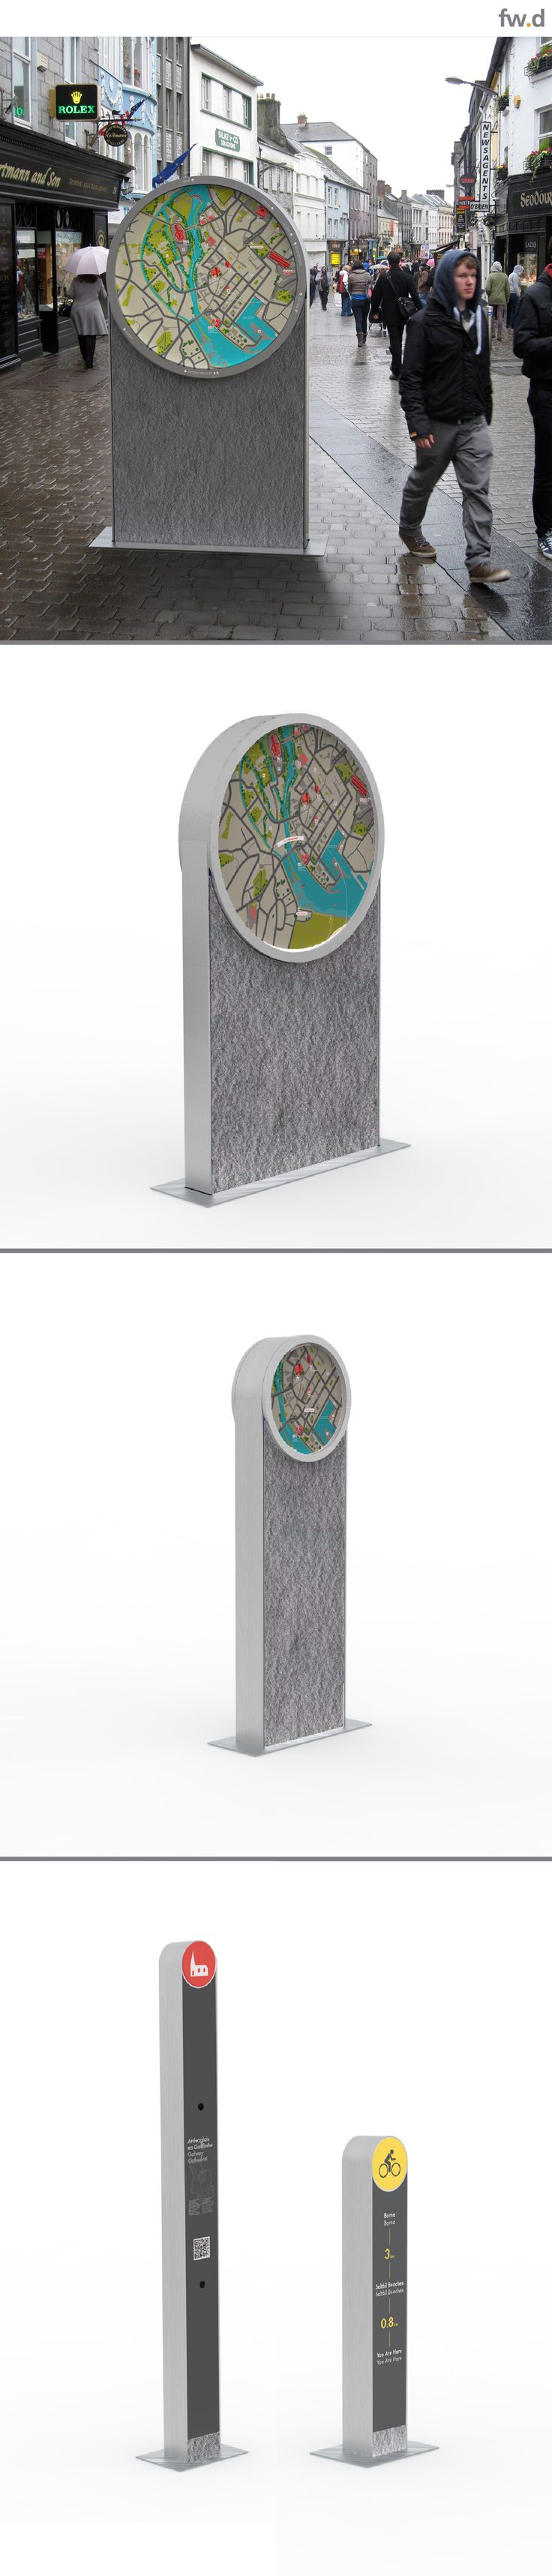 Street Furniture concept designs for Galway City, Ireland by fwdesign